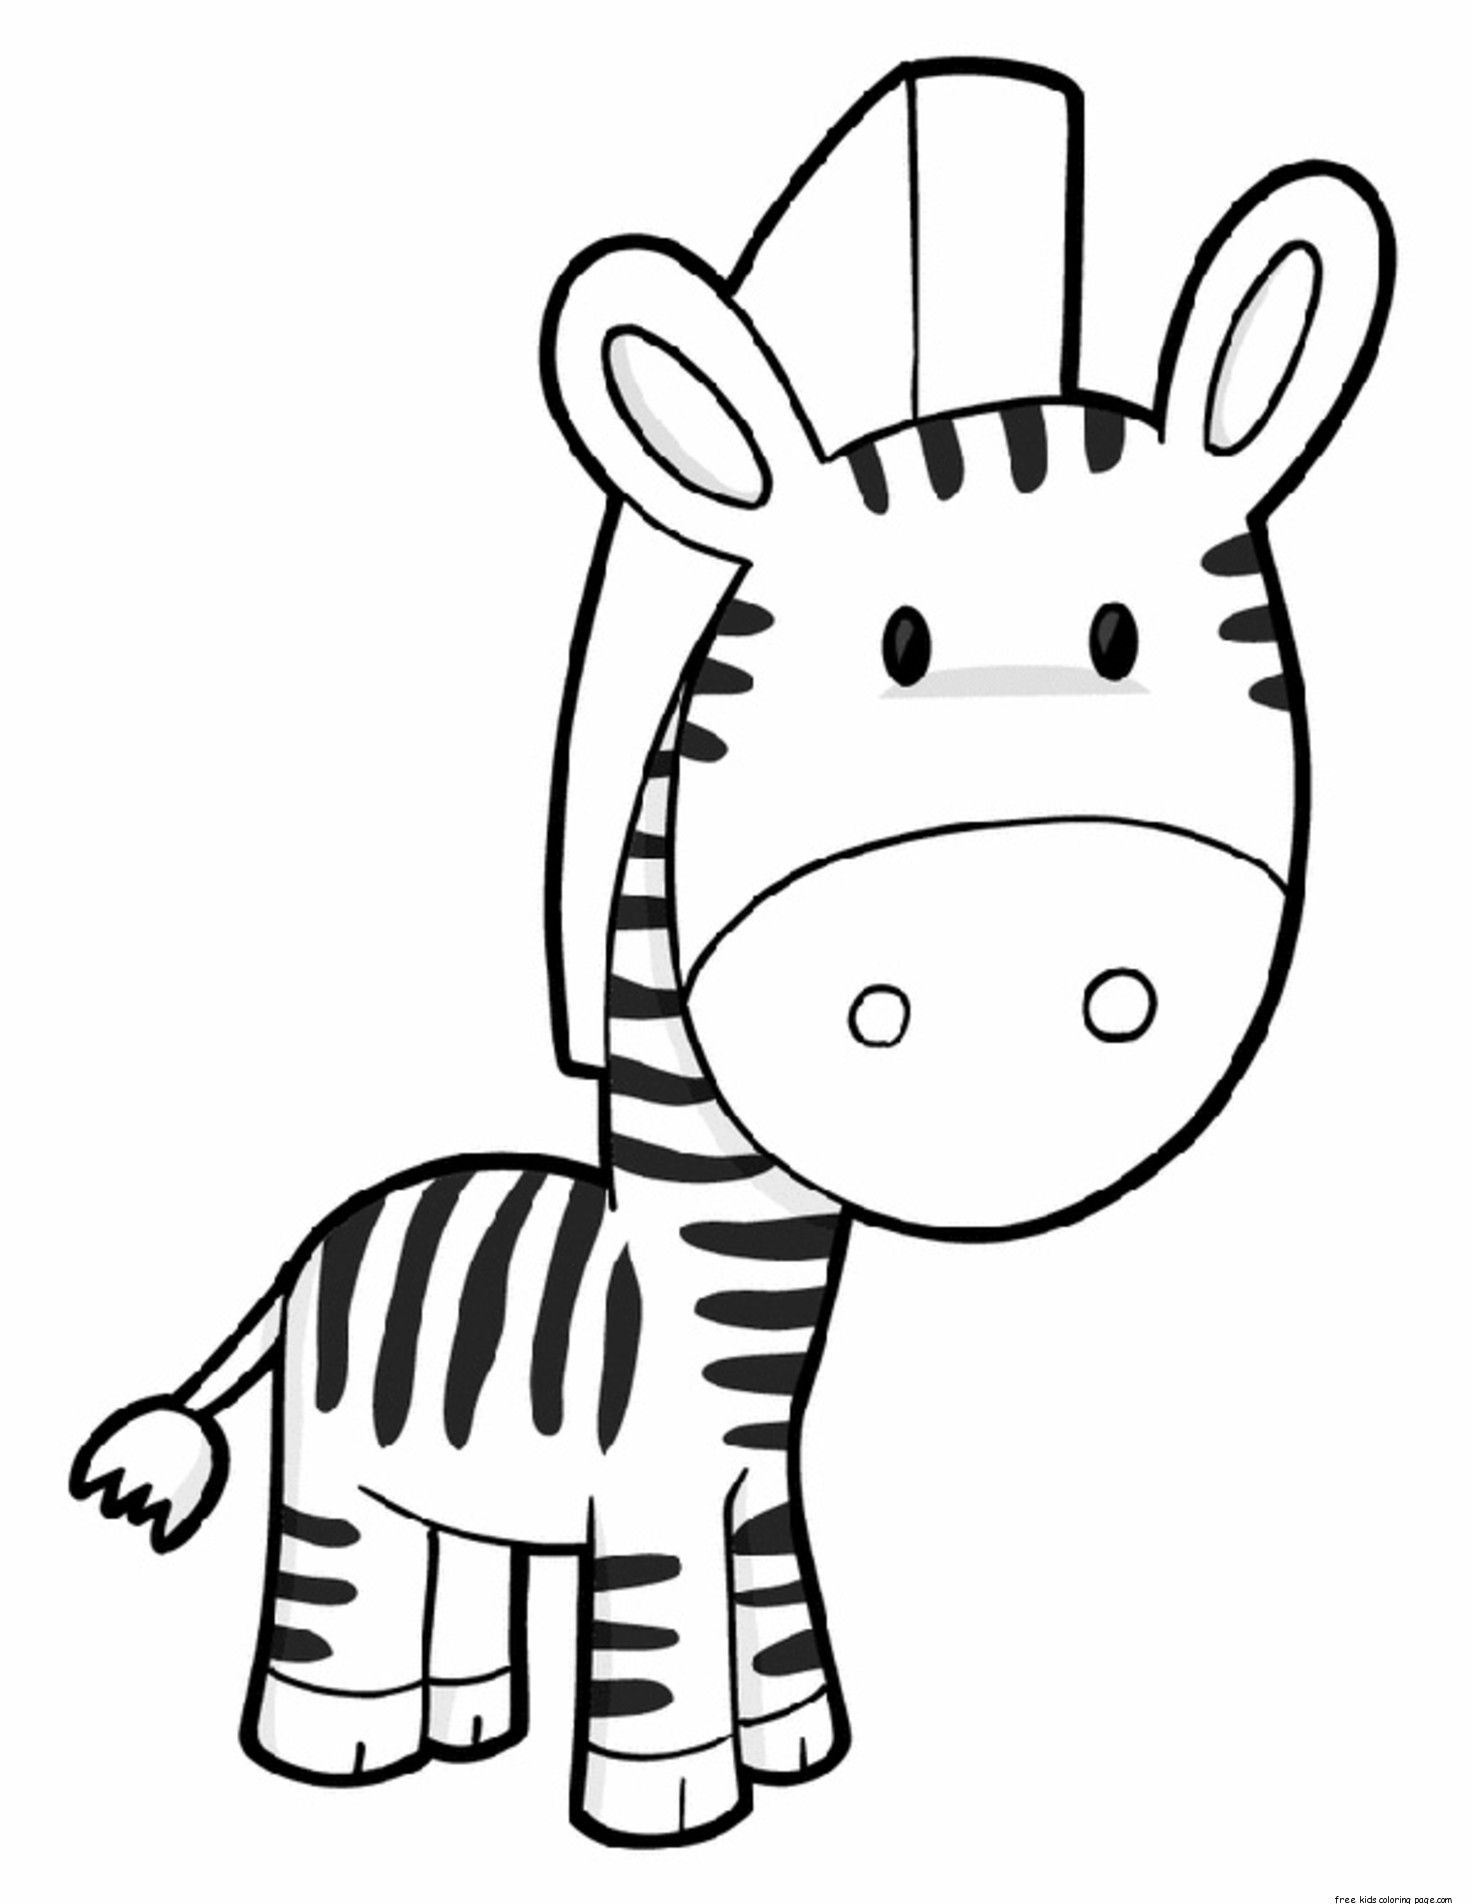 printable zebra preschool coloring page for kidsfree printable